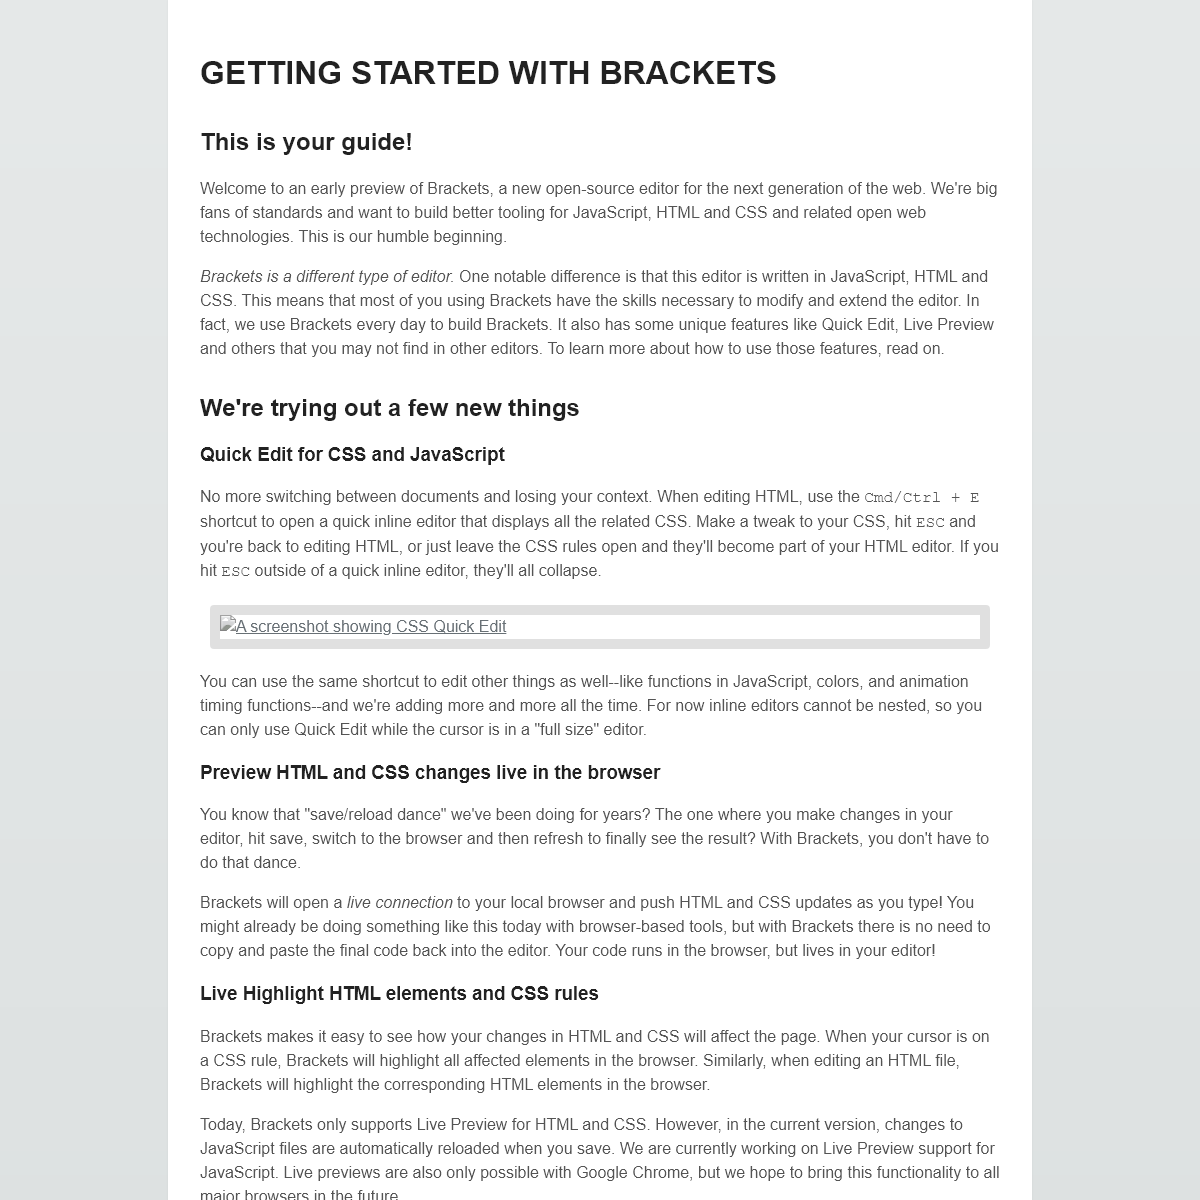 GETTING STARTED WITH BRACKETS